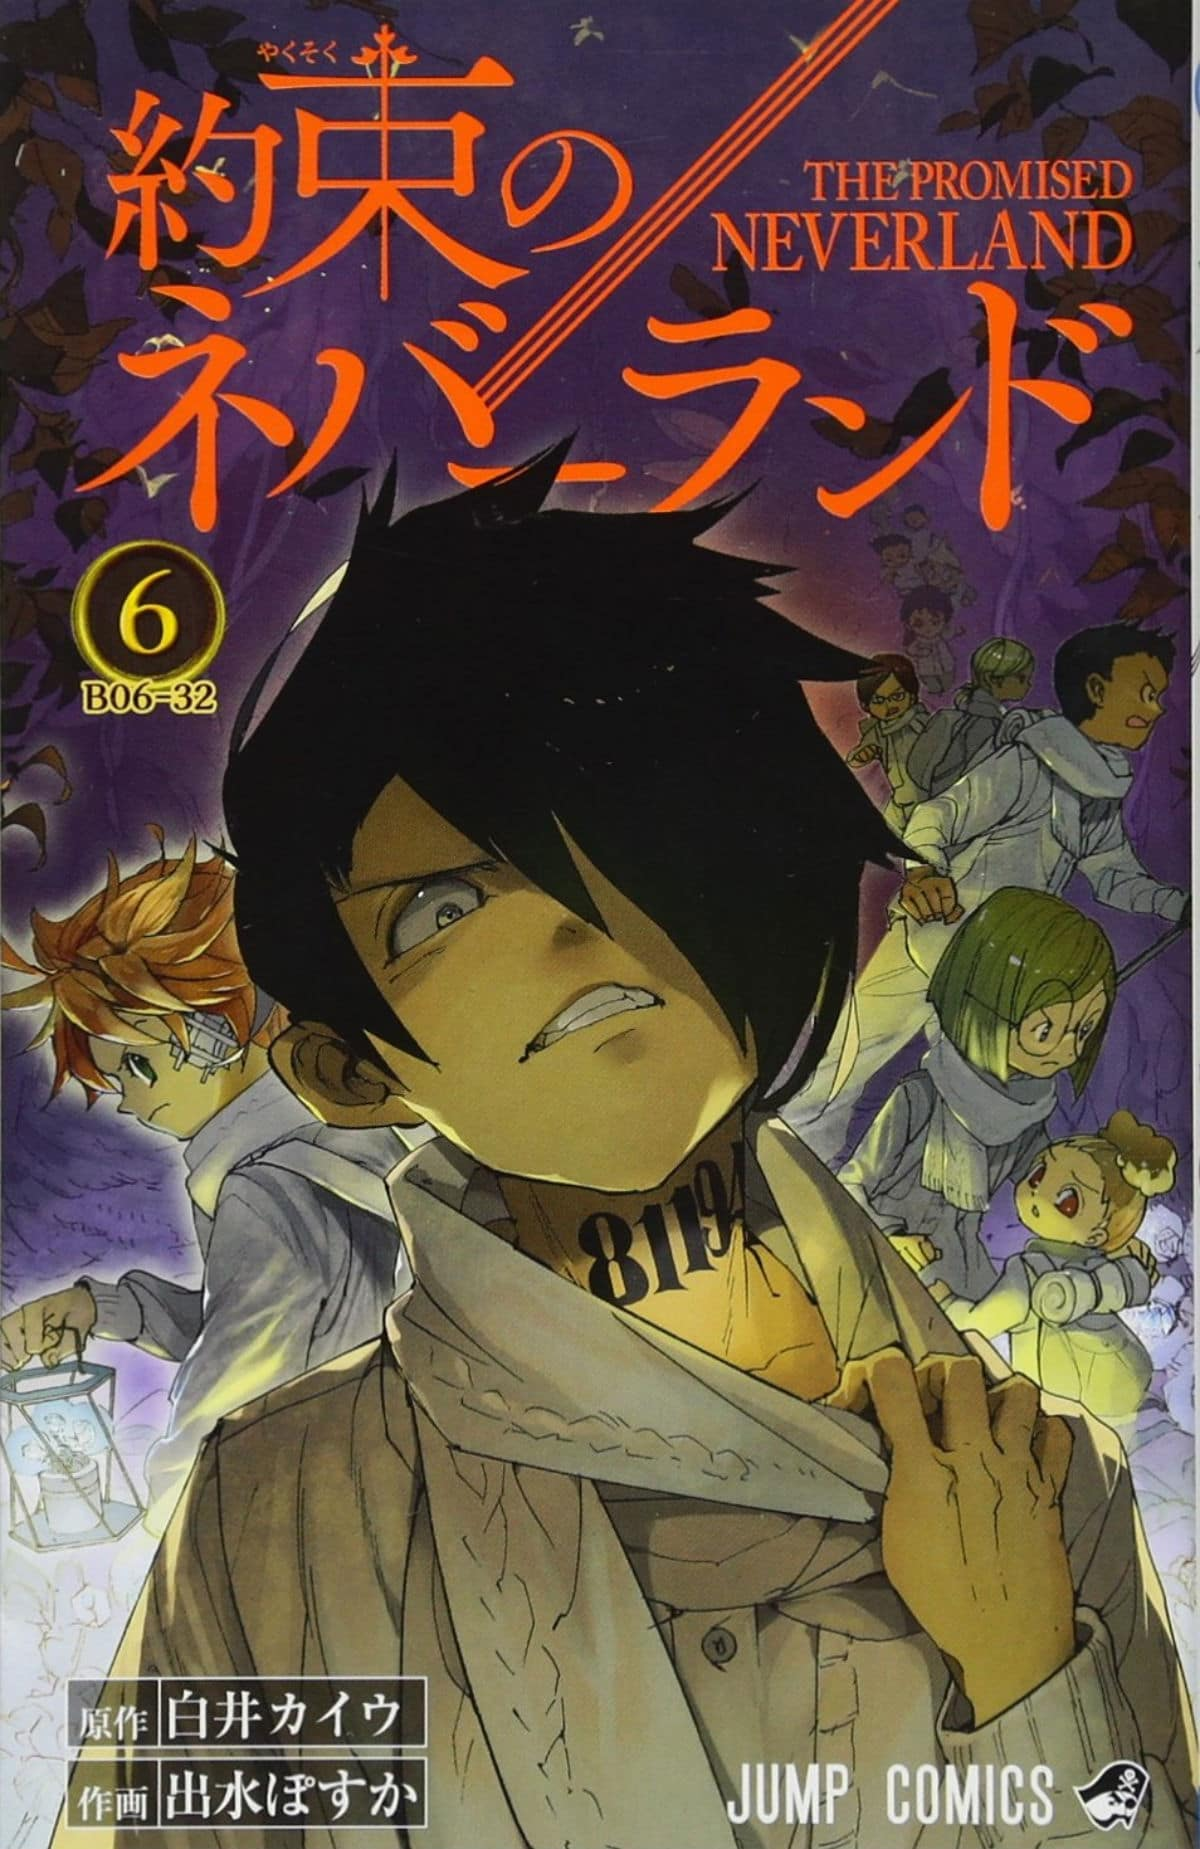 The Promised Neverland Volume 6 Cover Art